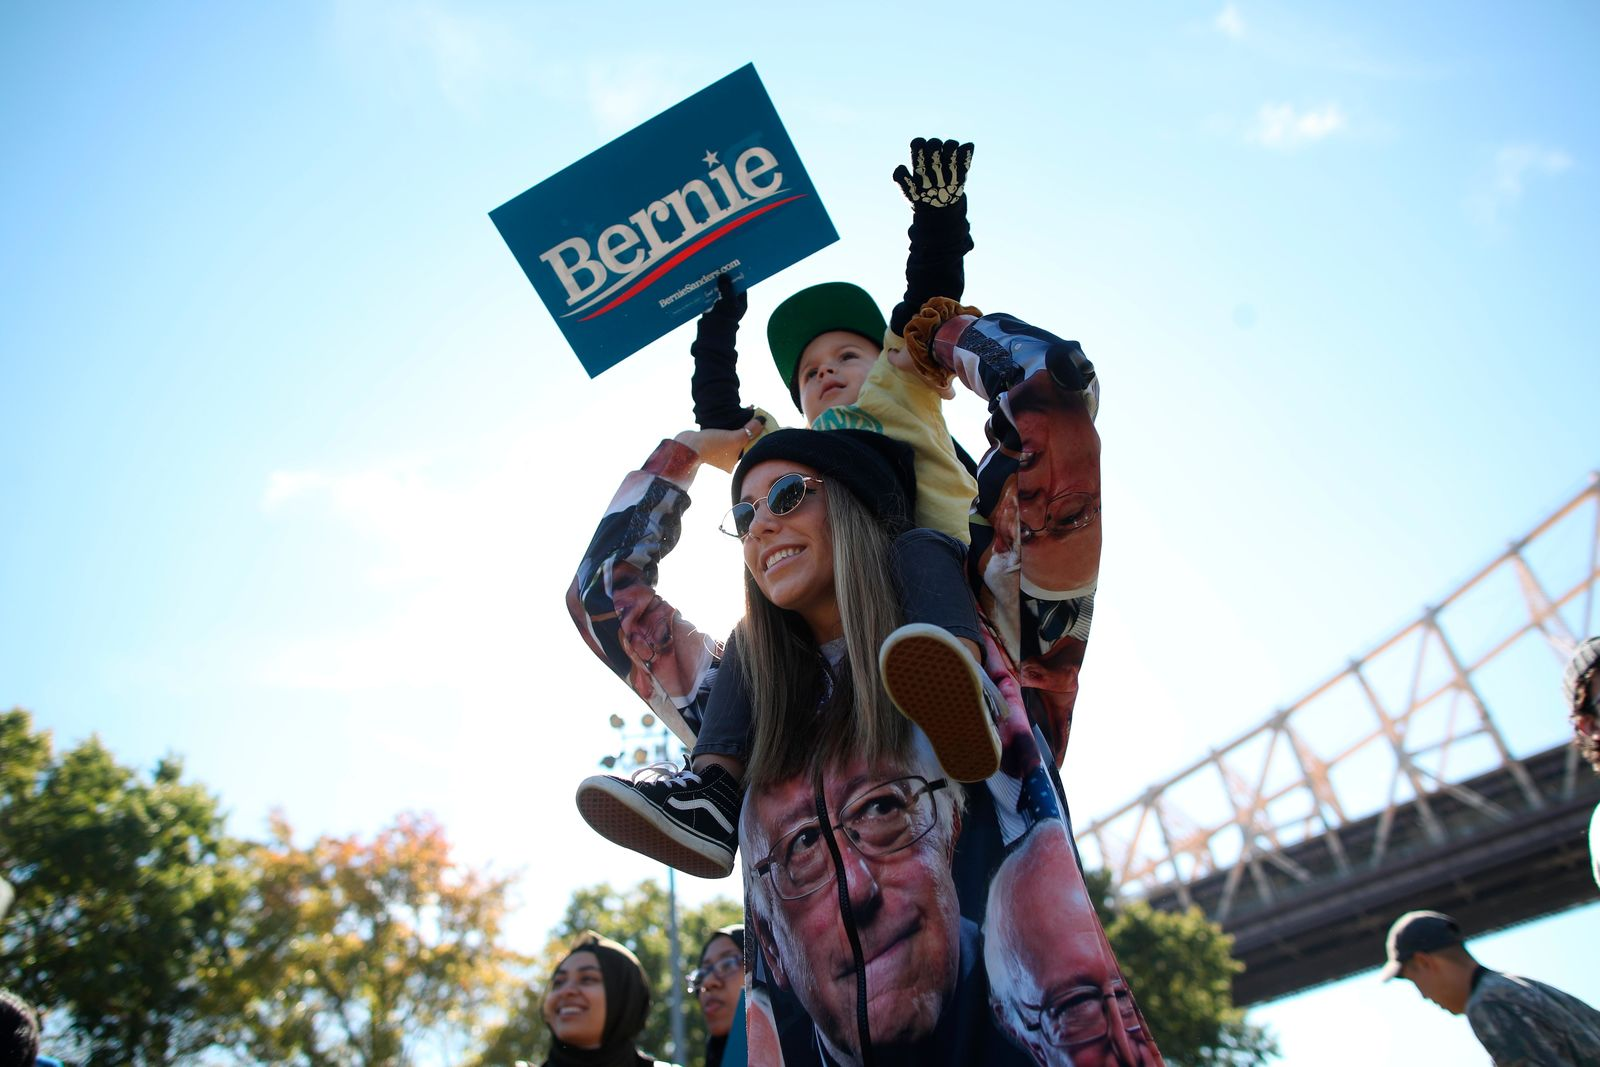 Keight Bowe holds her son her son Maddox, 3, during a campaign rally for Democratic presidential candidate Sen. Bernie Sanders, I-Vt., on Saturday, Oct. 19, 2019 in New York. (AP Photo/Mary Altaffer)